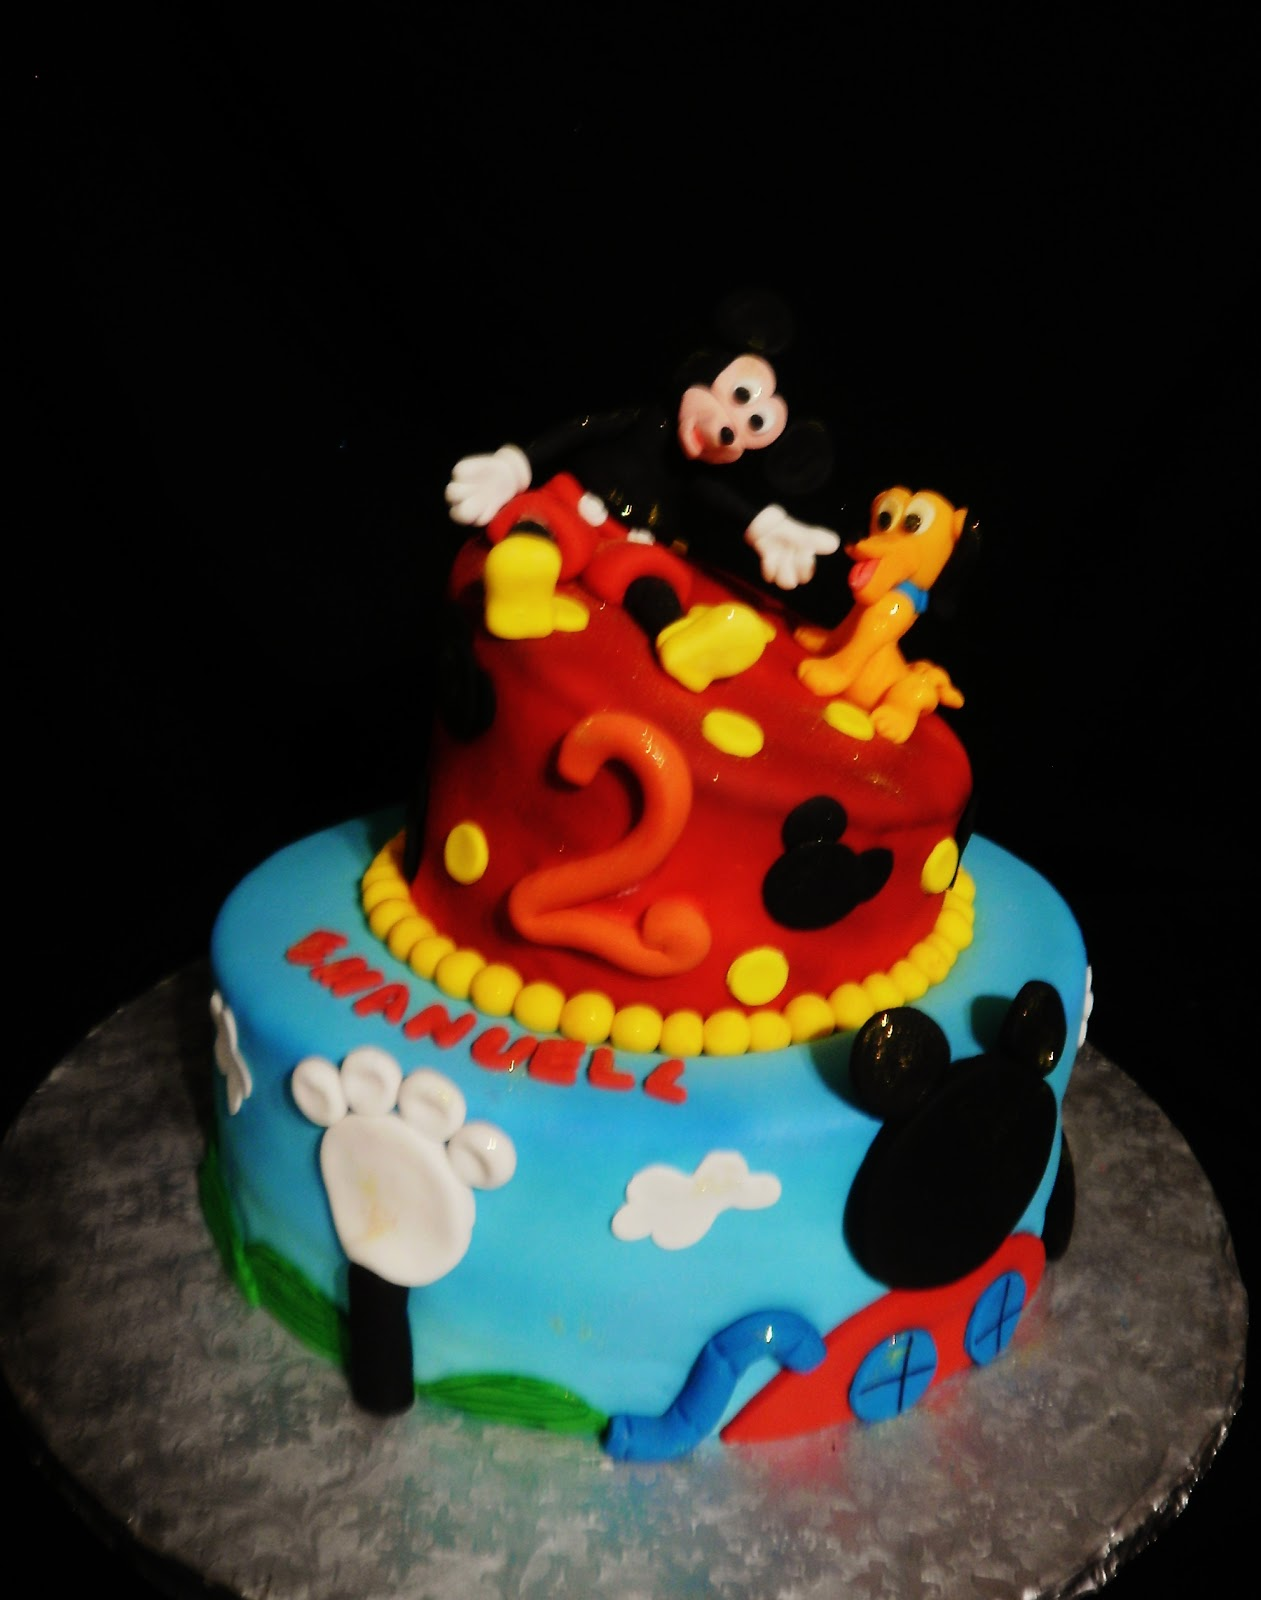 Mickey Mouse Images For Cake : Mickey Mouse Cakes Search Results Calendar 2015